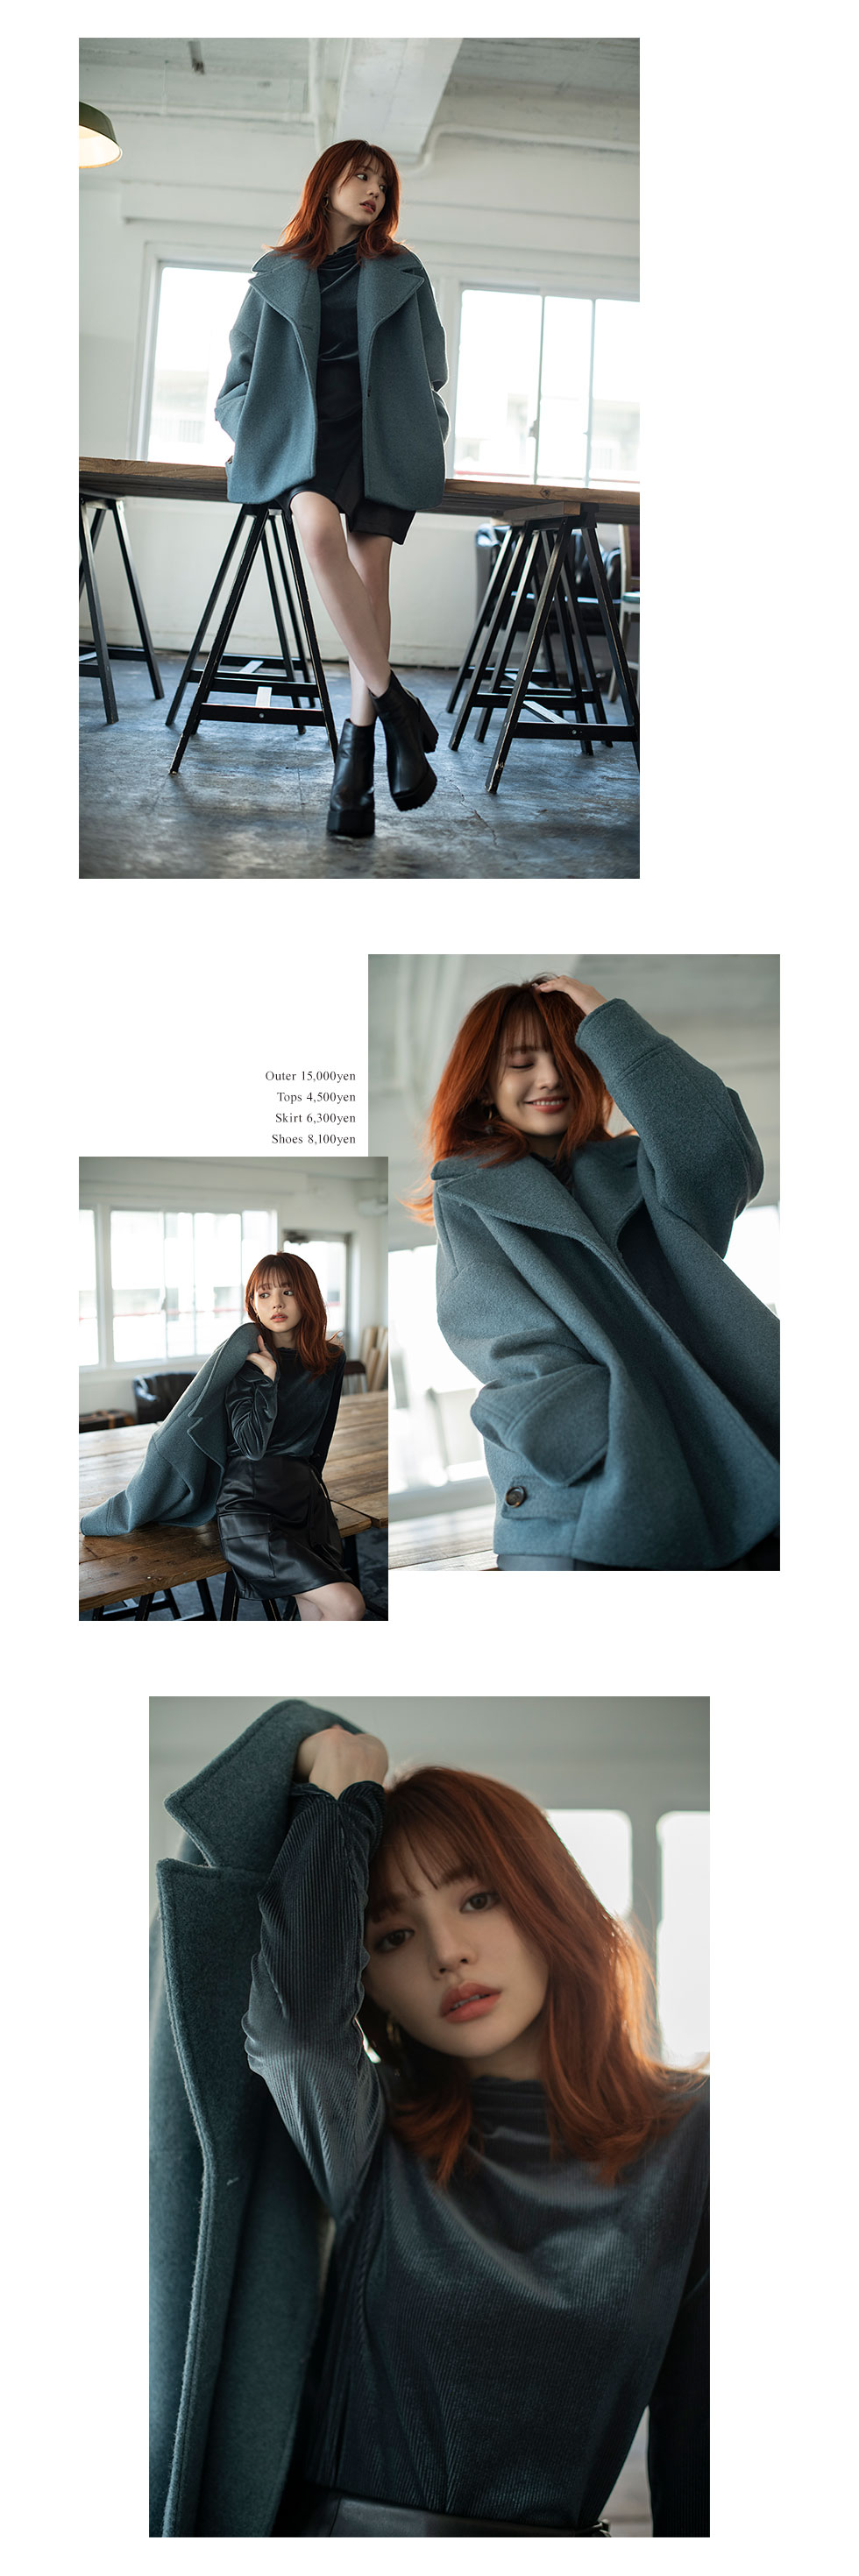 2020 AUTUMN & WINTER feat. Chisato Yoshiki vol.26